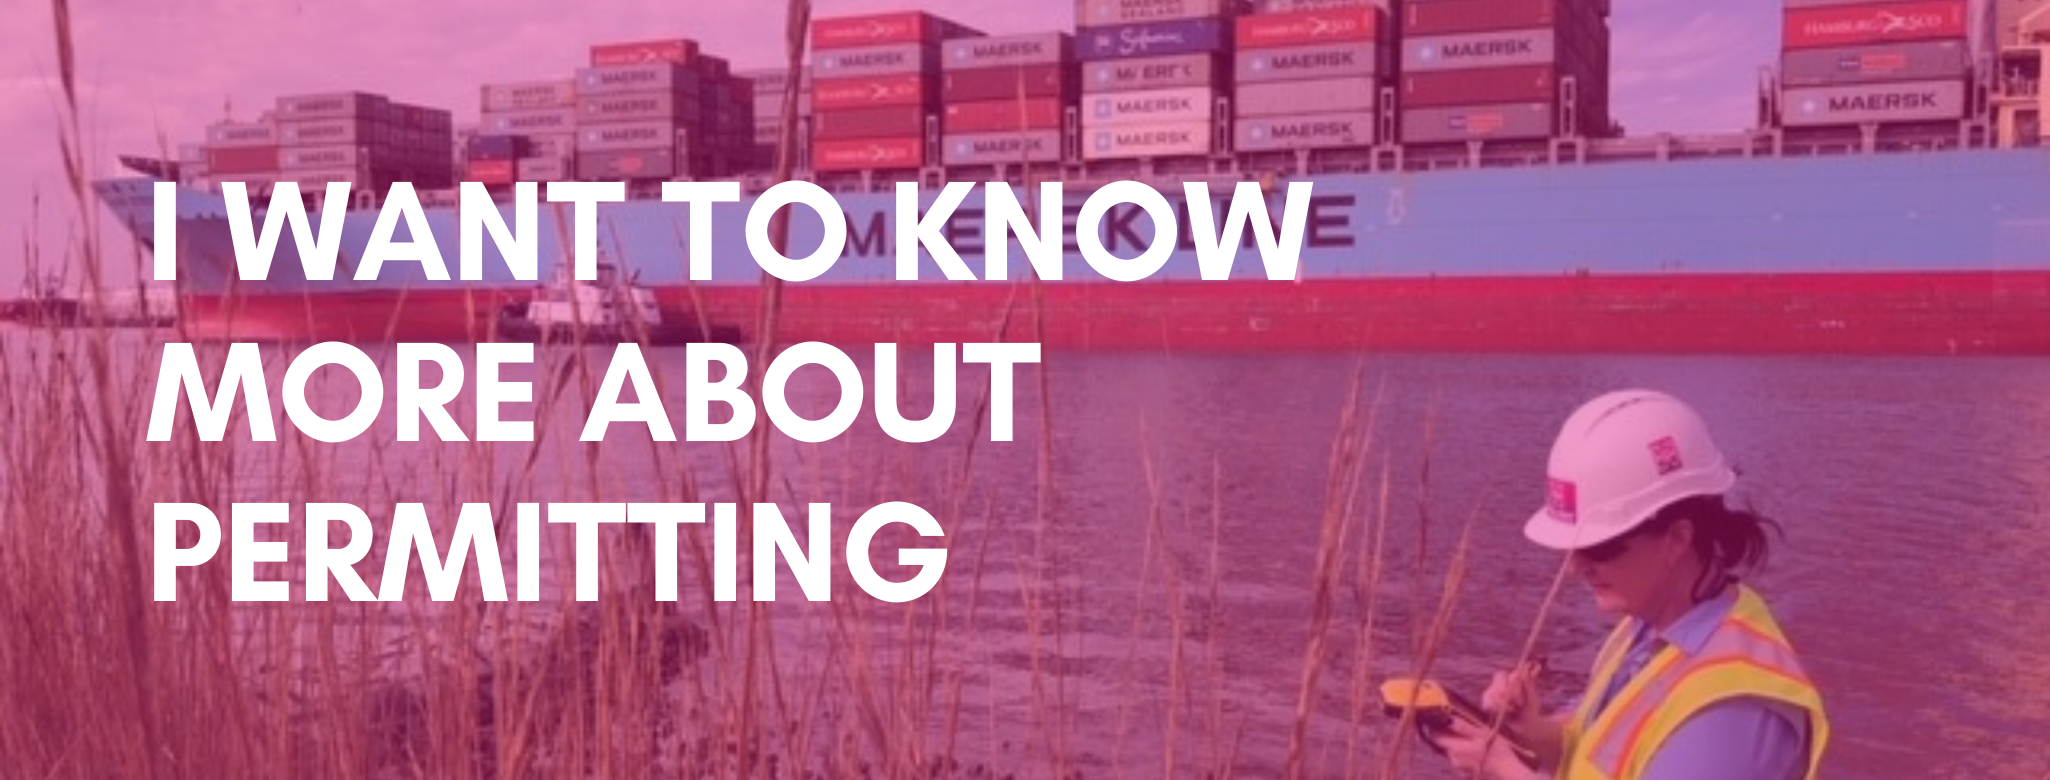 Find out more about permitting